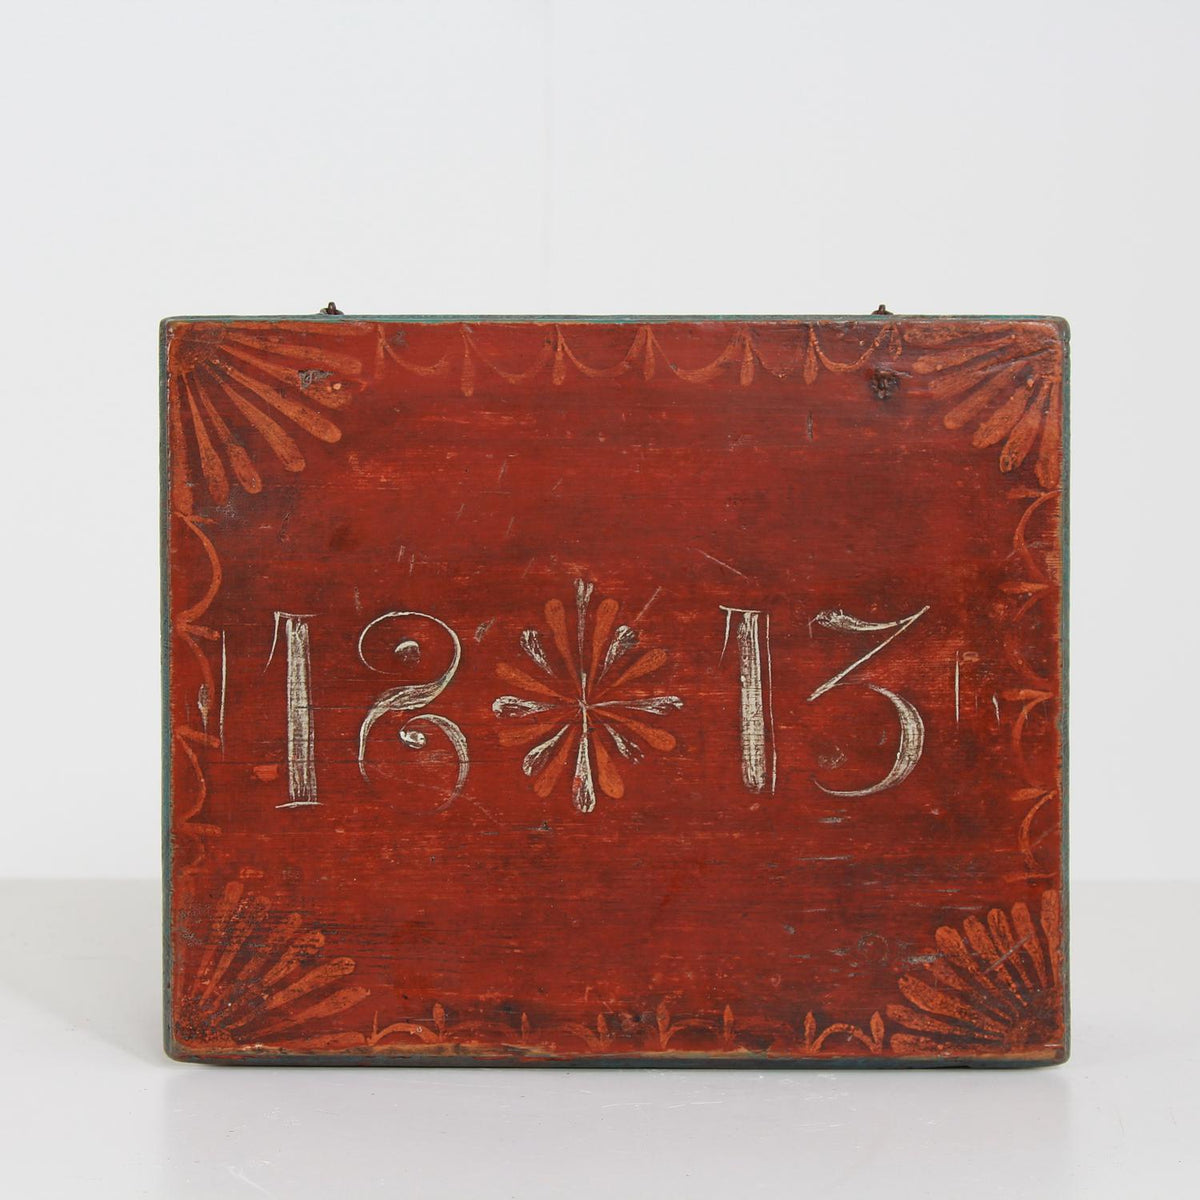 Early Swedish 19th Century Wooden Folk Art Box  Dated 1813